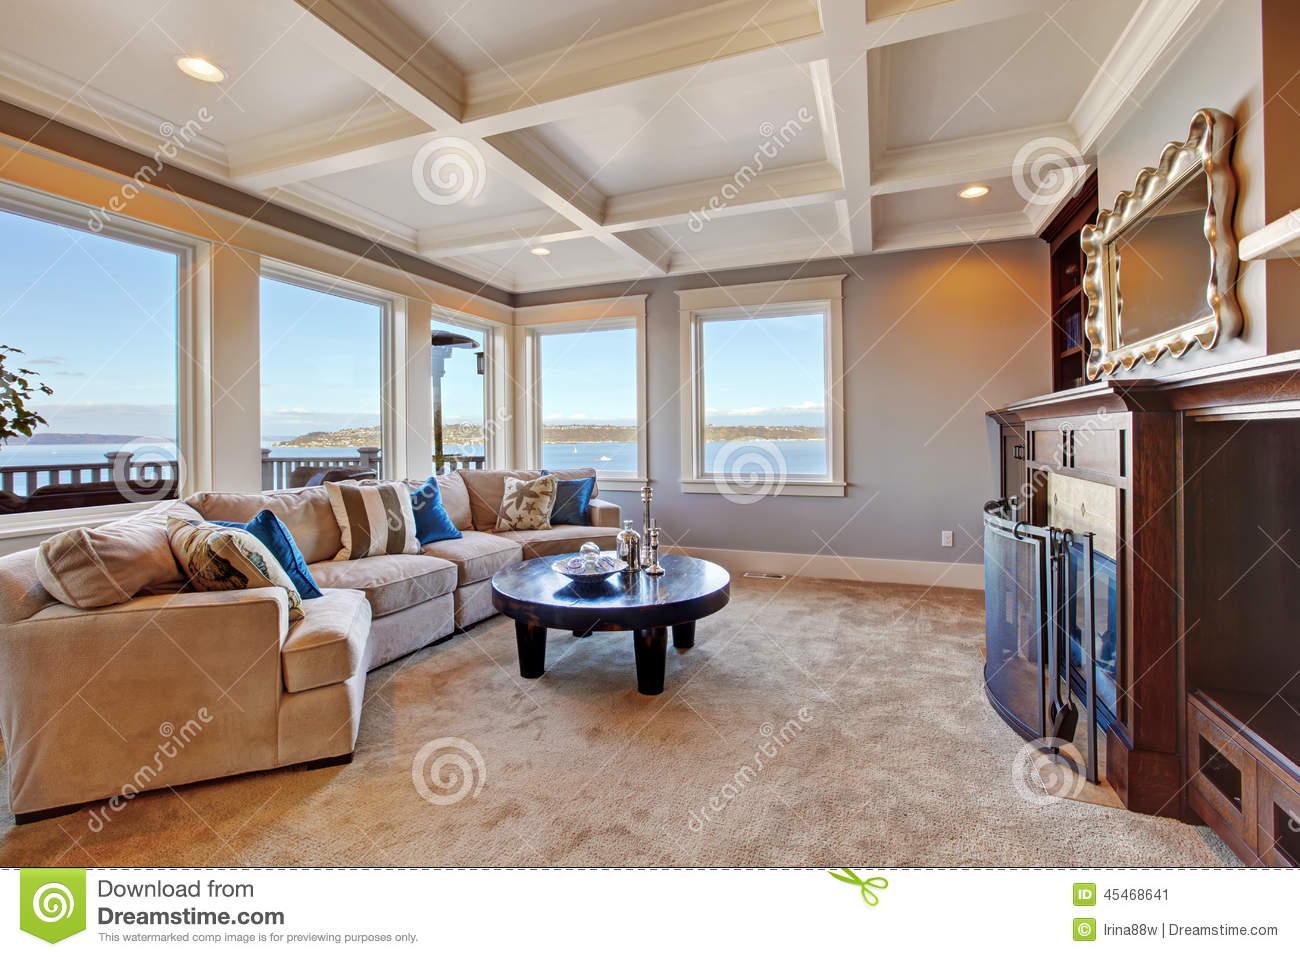 Warm Living Room Interior In Luxury House With Puget Sound